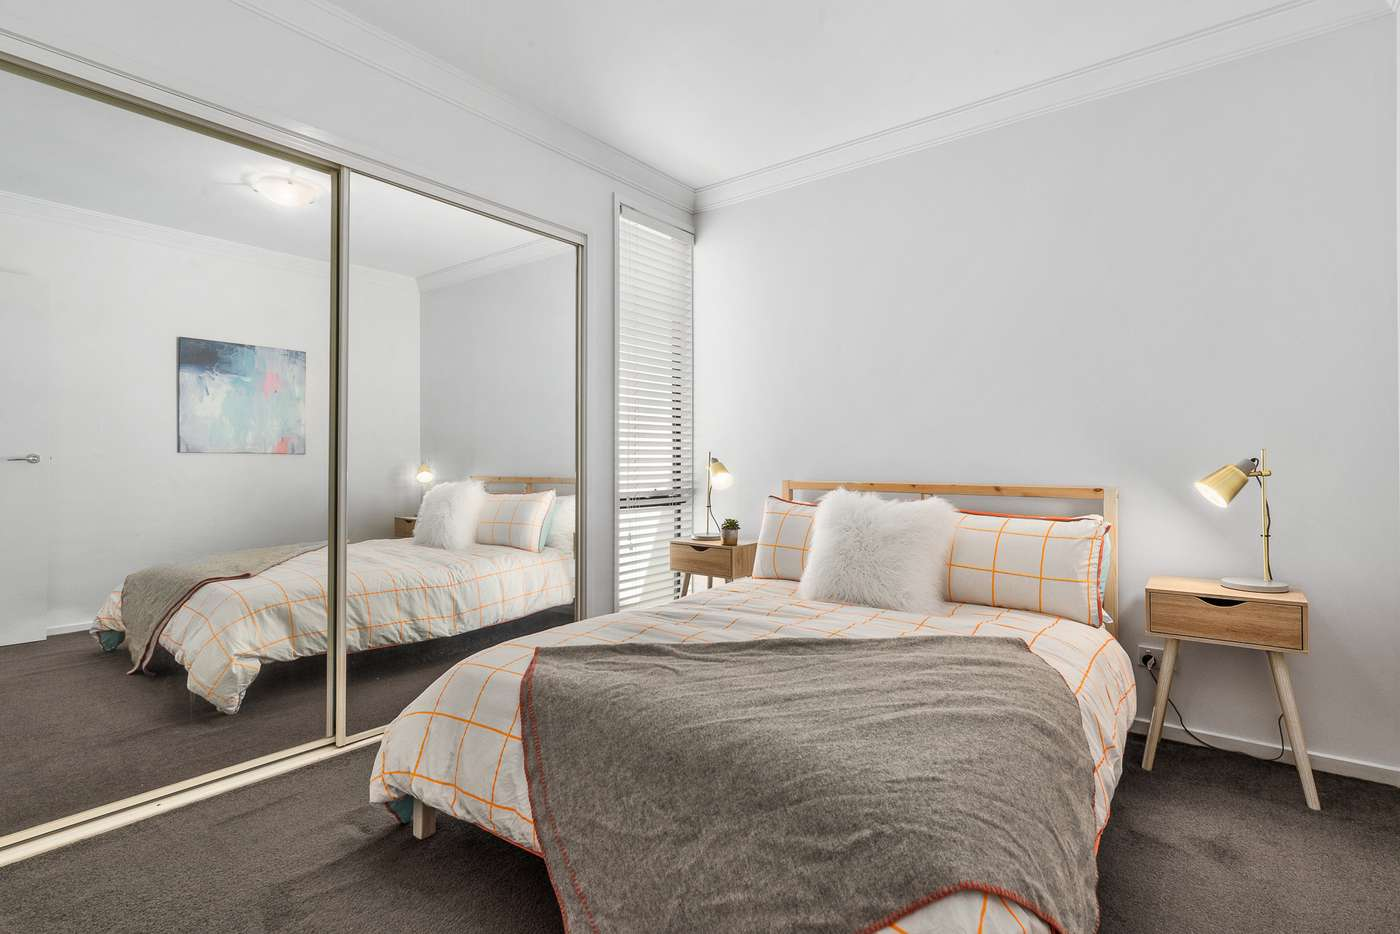 Sixth view of Homely apartment listing, 12/65 Westbury Street, St Kilda East VIC 3183